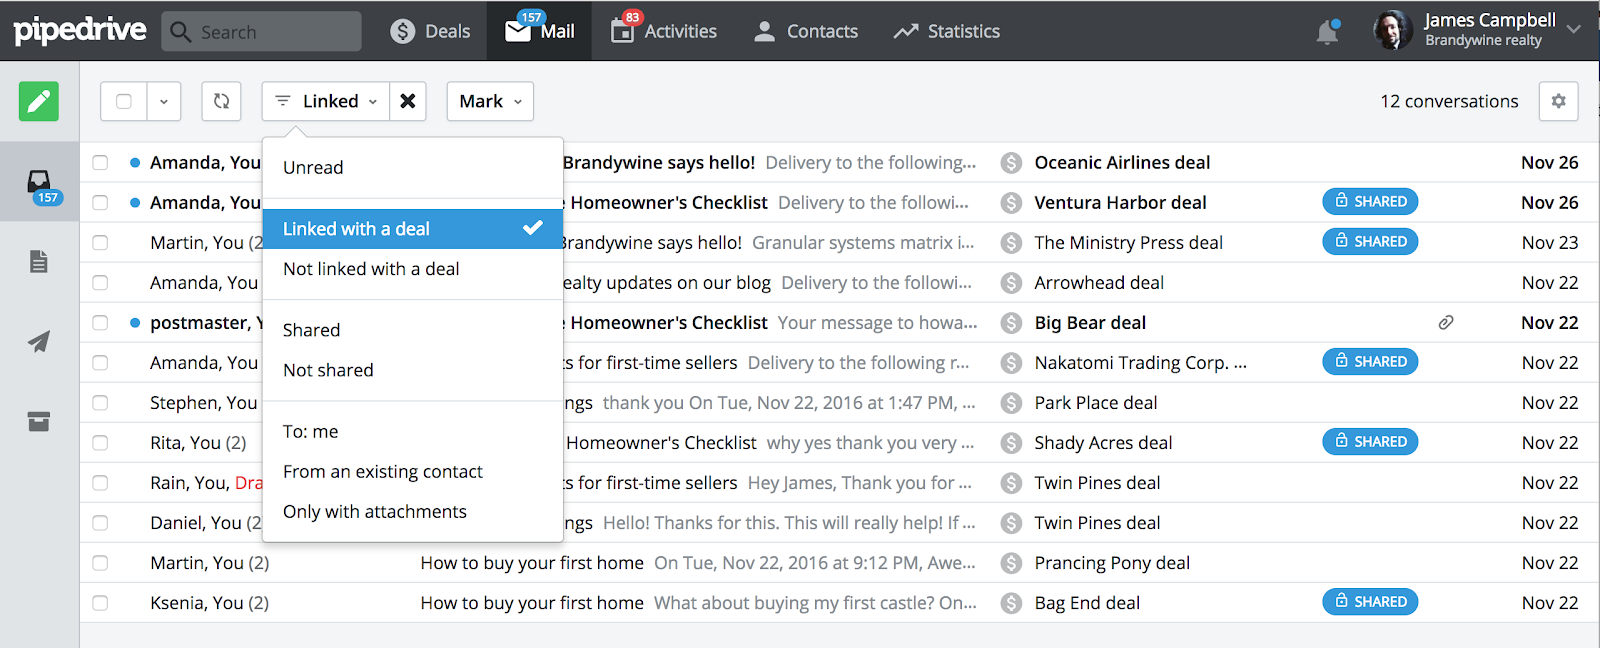 Managing sales activities: pipedrive easy to use email filters